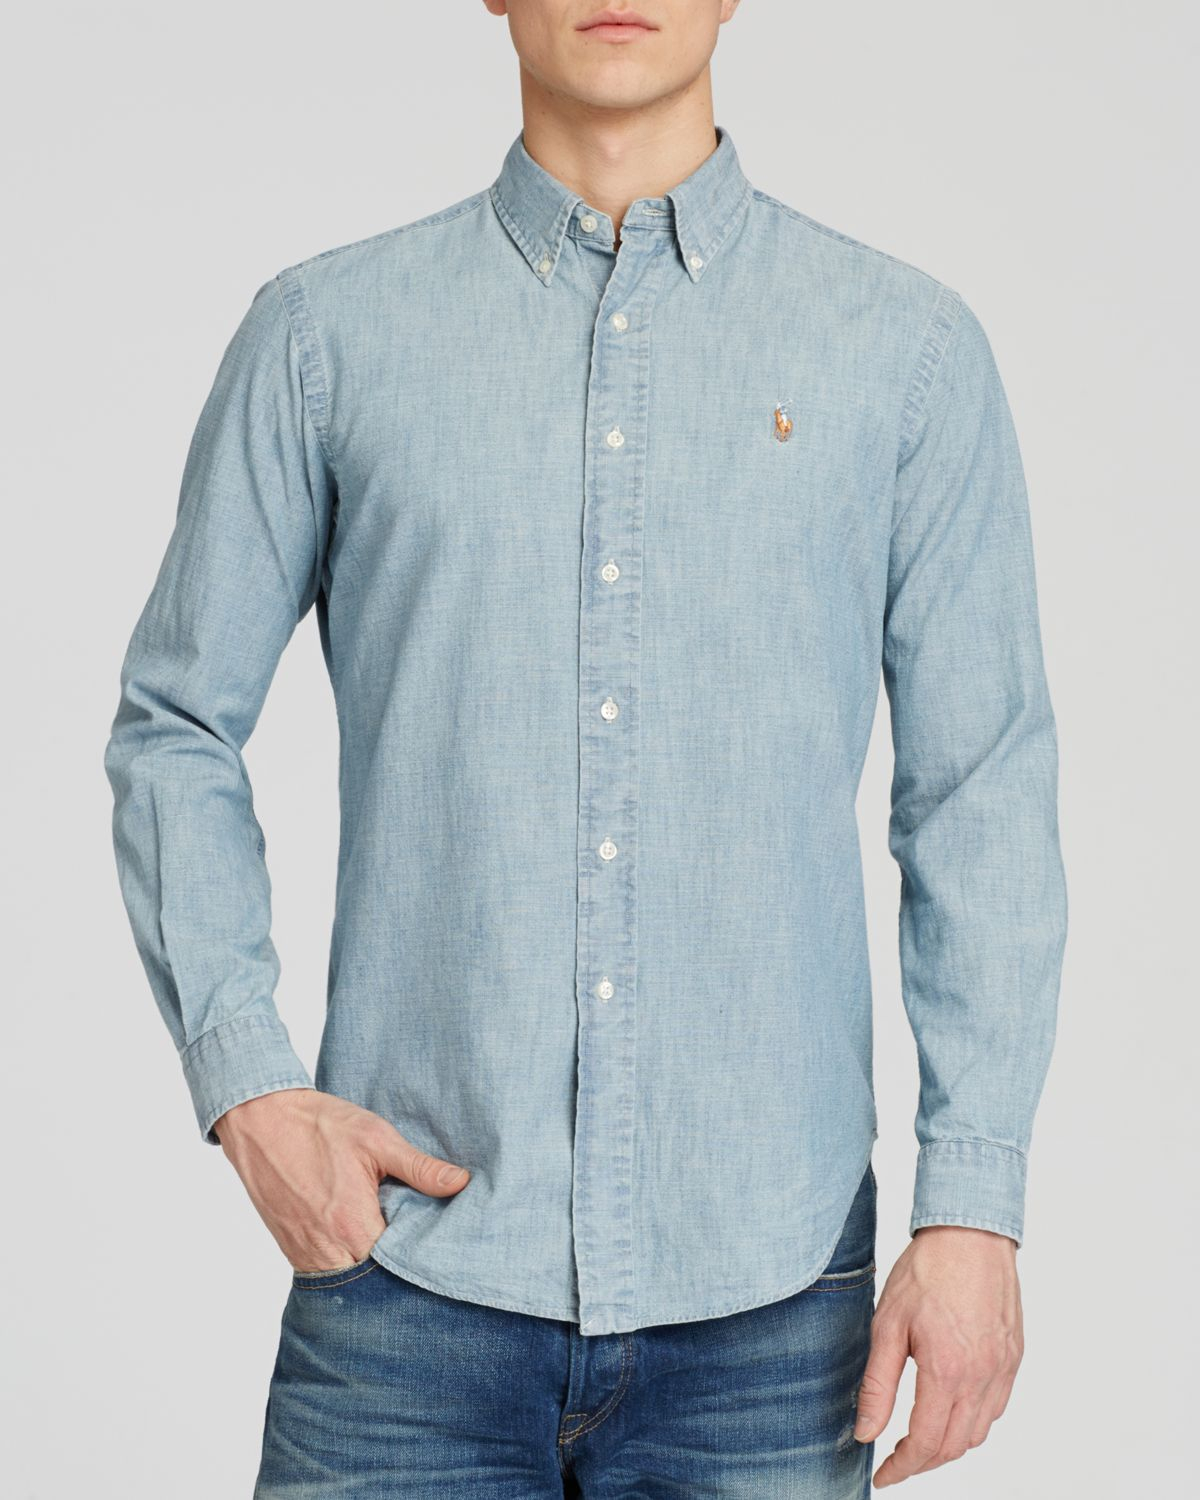 Polo Ralph Lauren Chambray Button Down Shirt Classic Fit